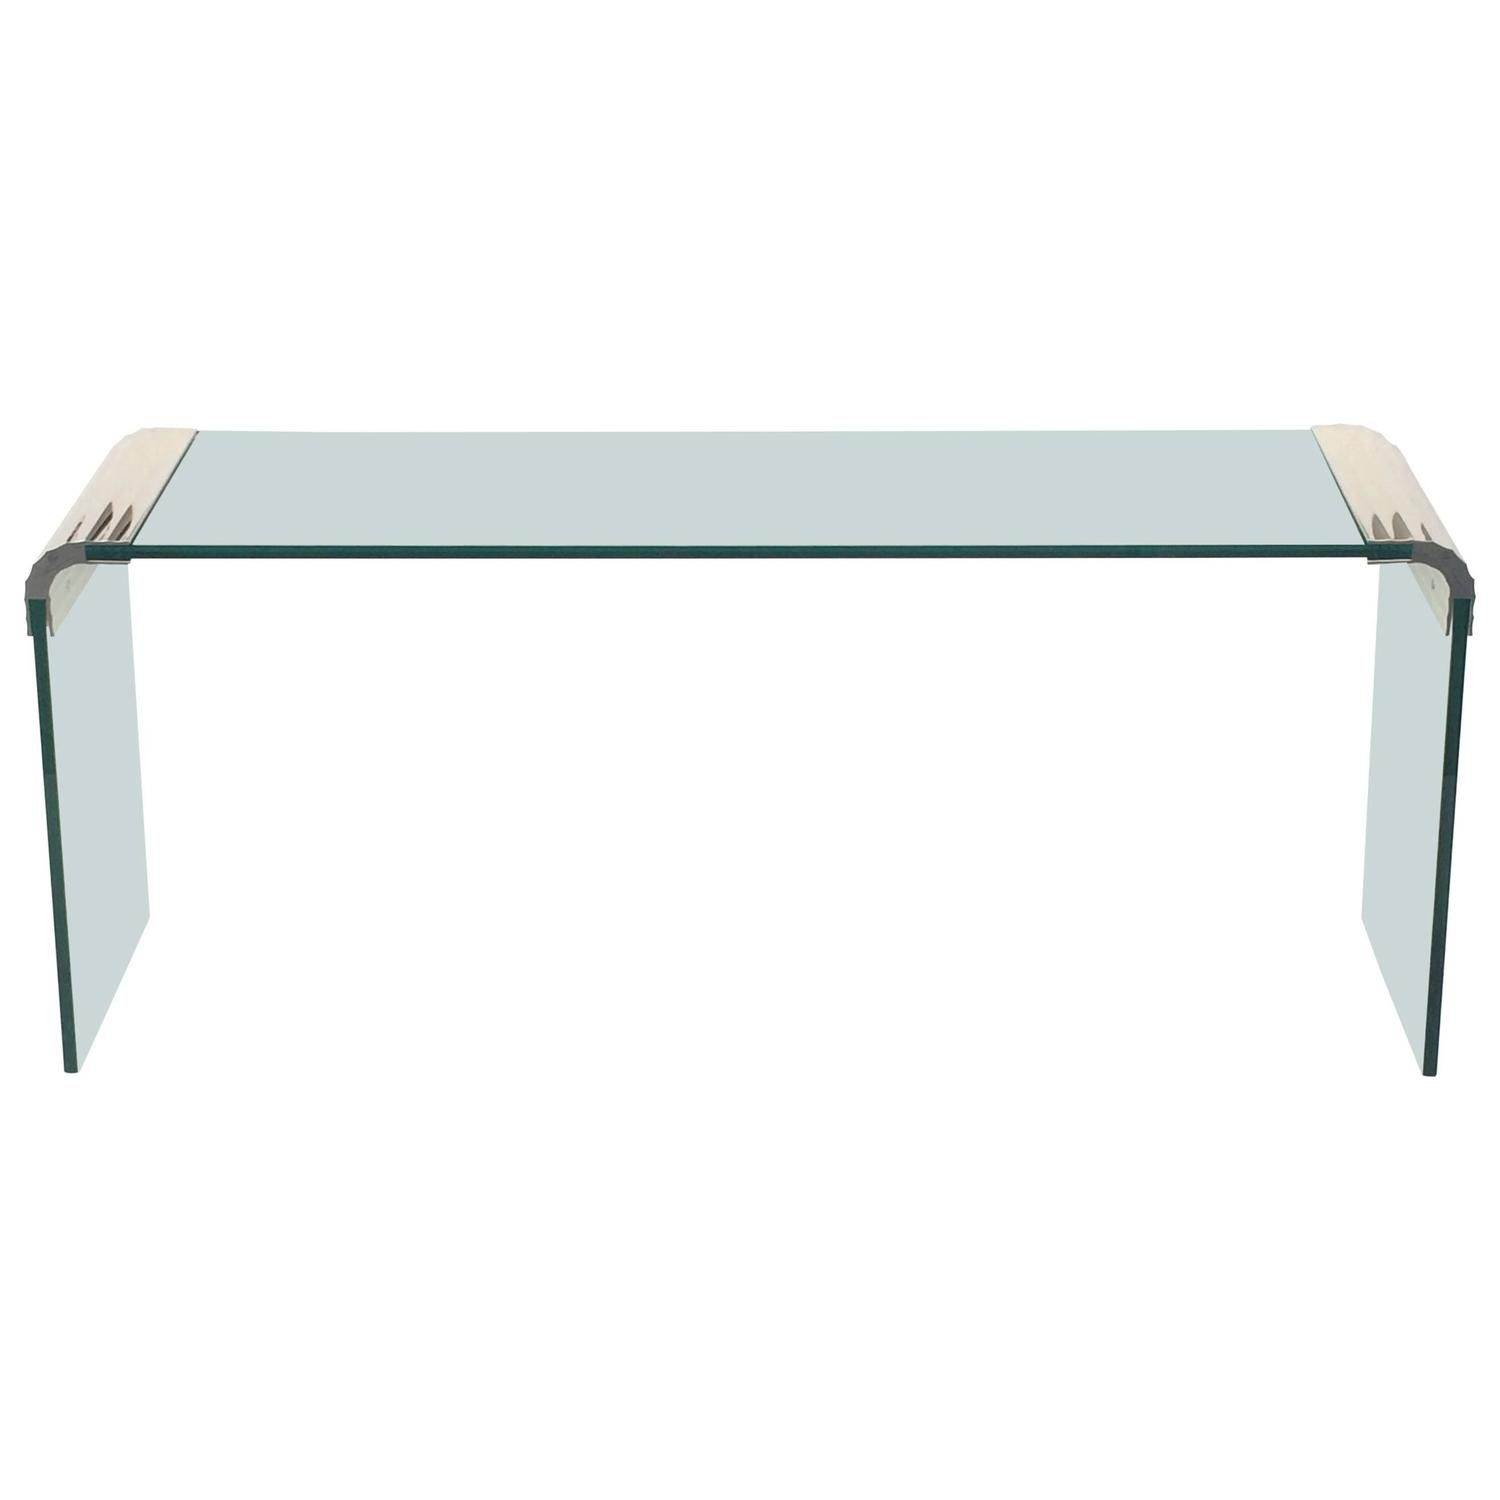 Scalloped nickel and glass console table by leon rosen for pace collection fo - Table a manger transparente ...